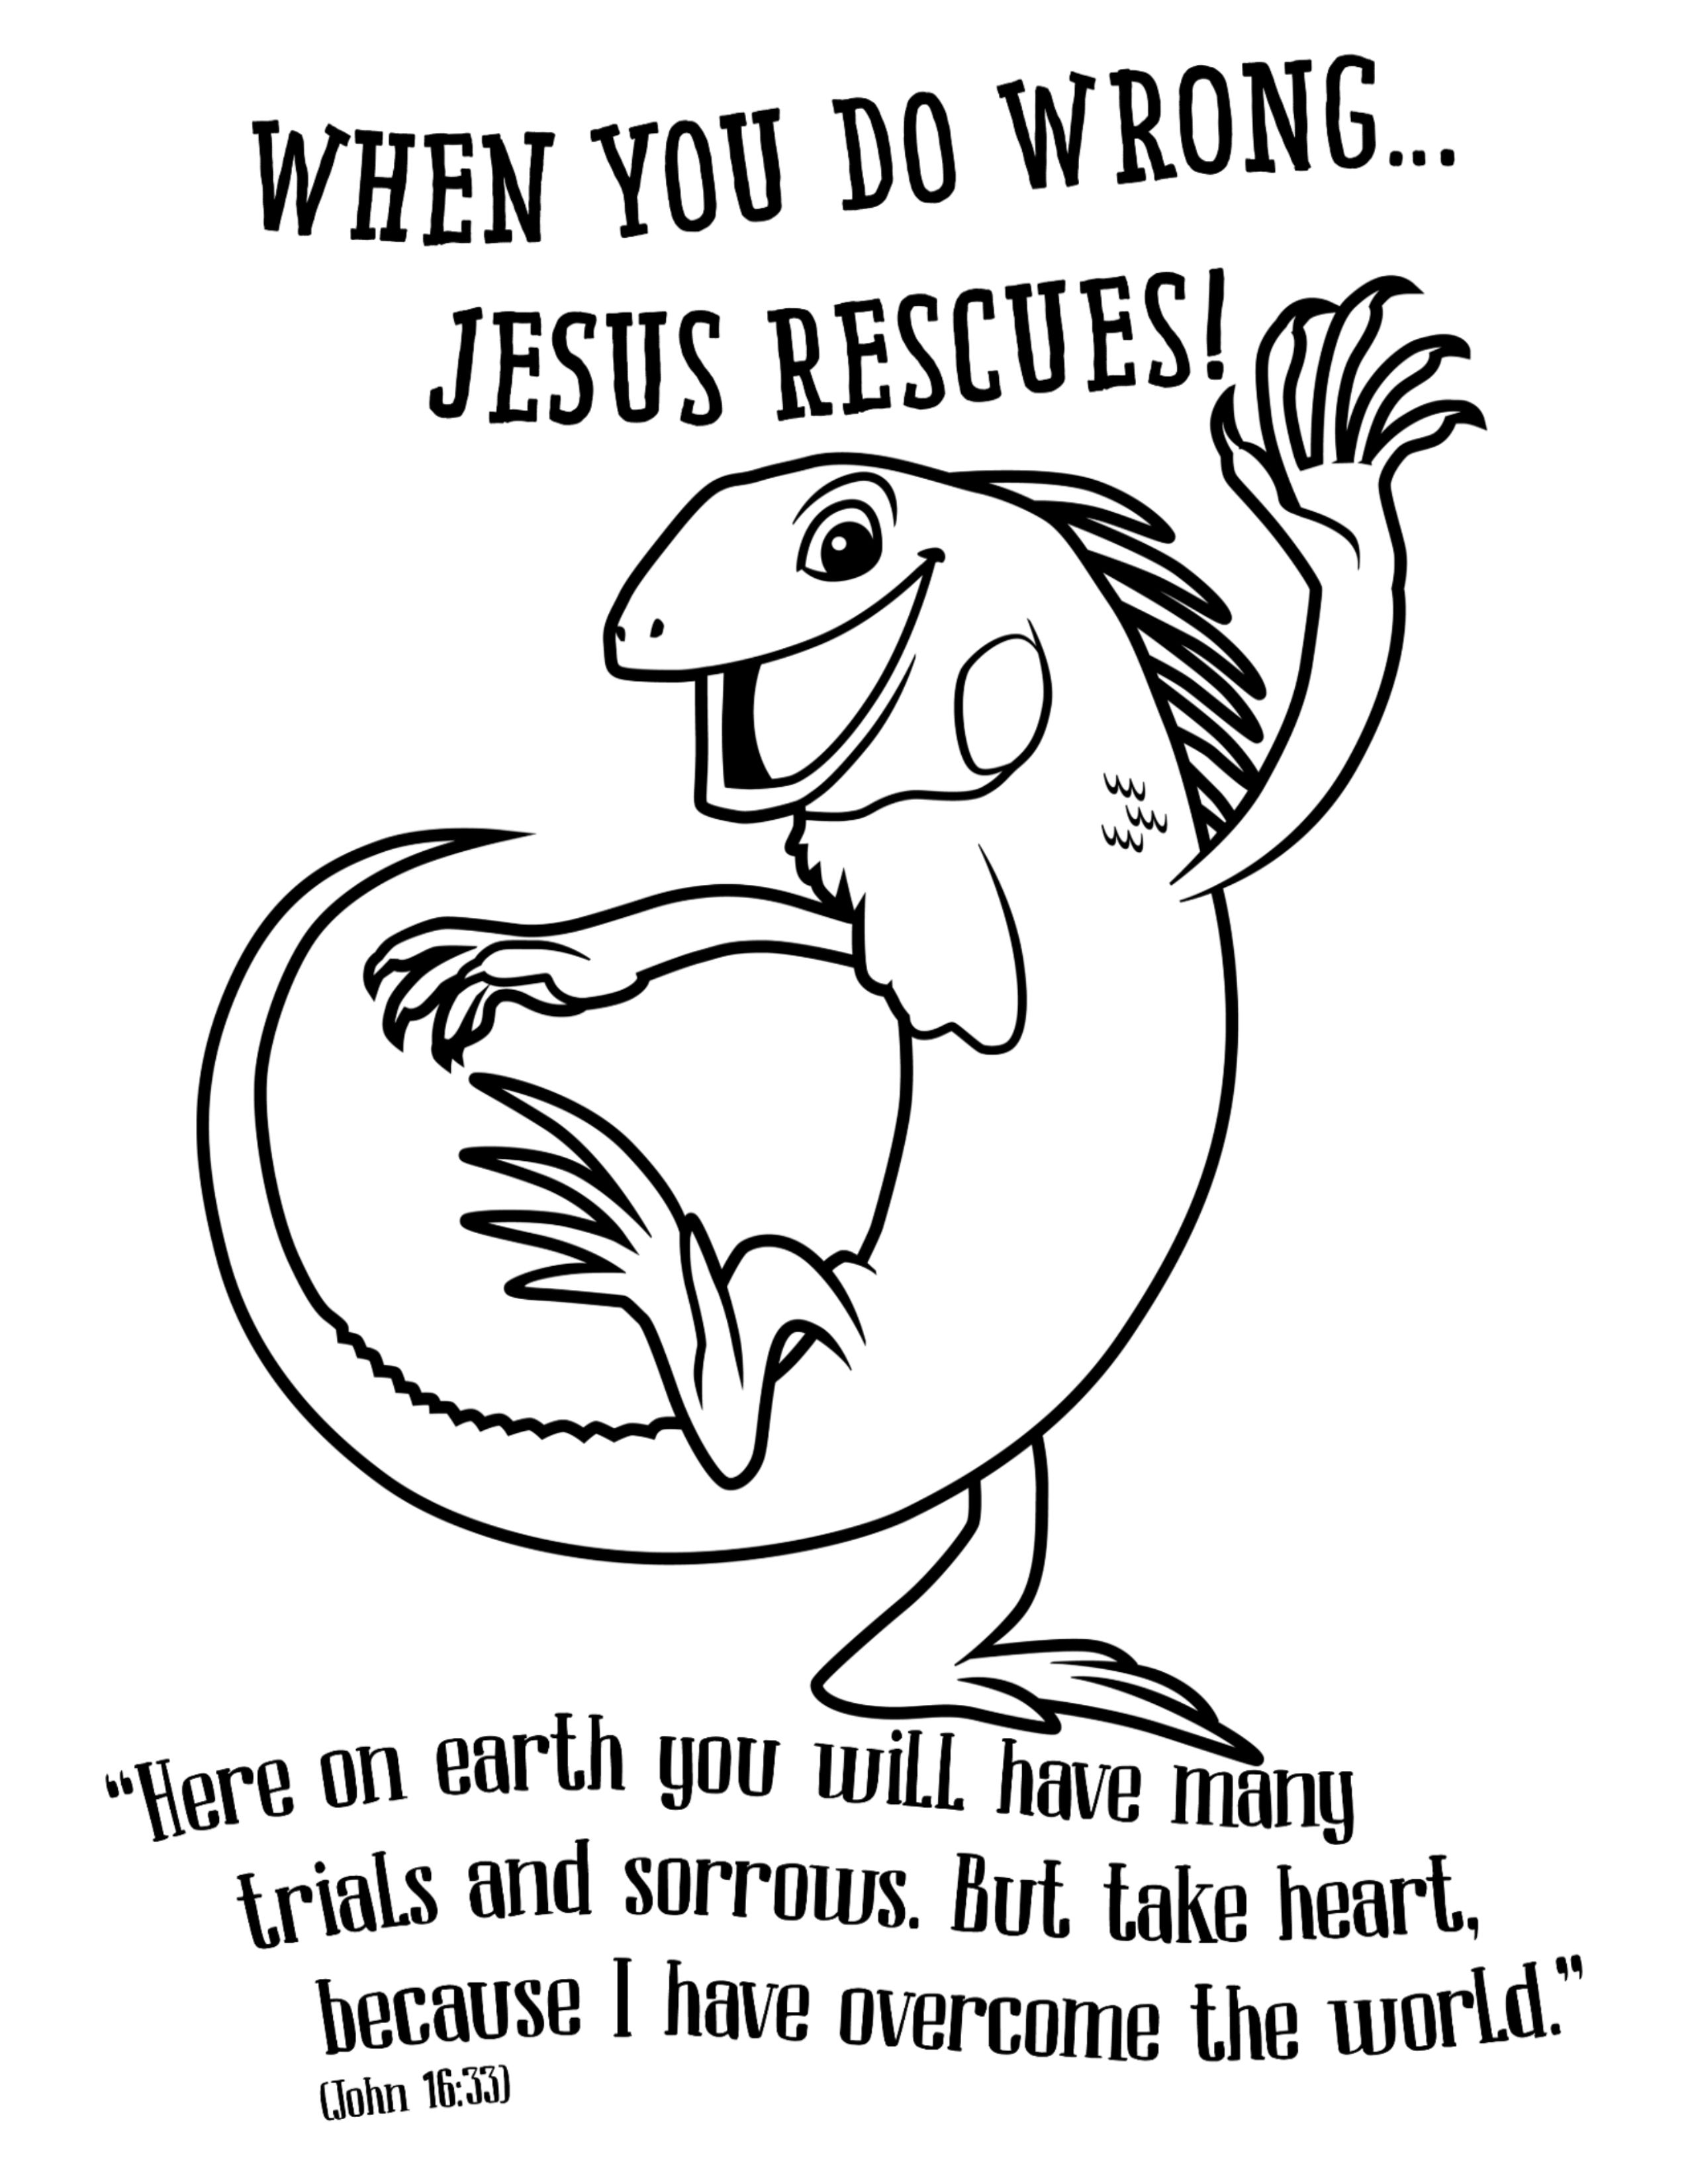 shipwrecked vbs coloring pages Shipwrecked Coloring Page Guac | Shipwrecked VBS 2018 | Pinterest  shipwrecked vbs coloring pages